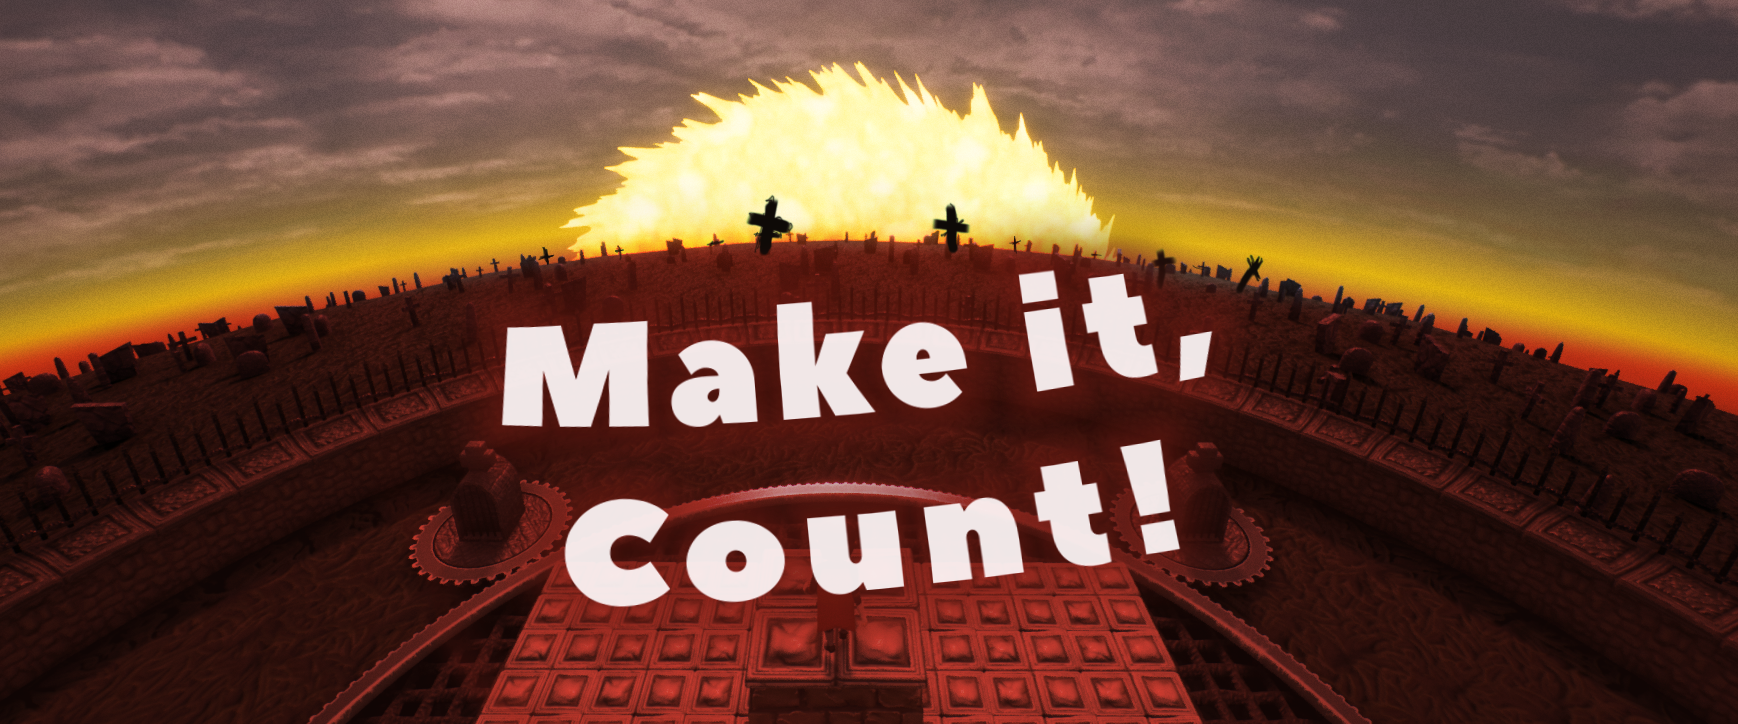 Make It, Count!